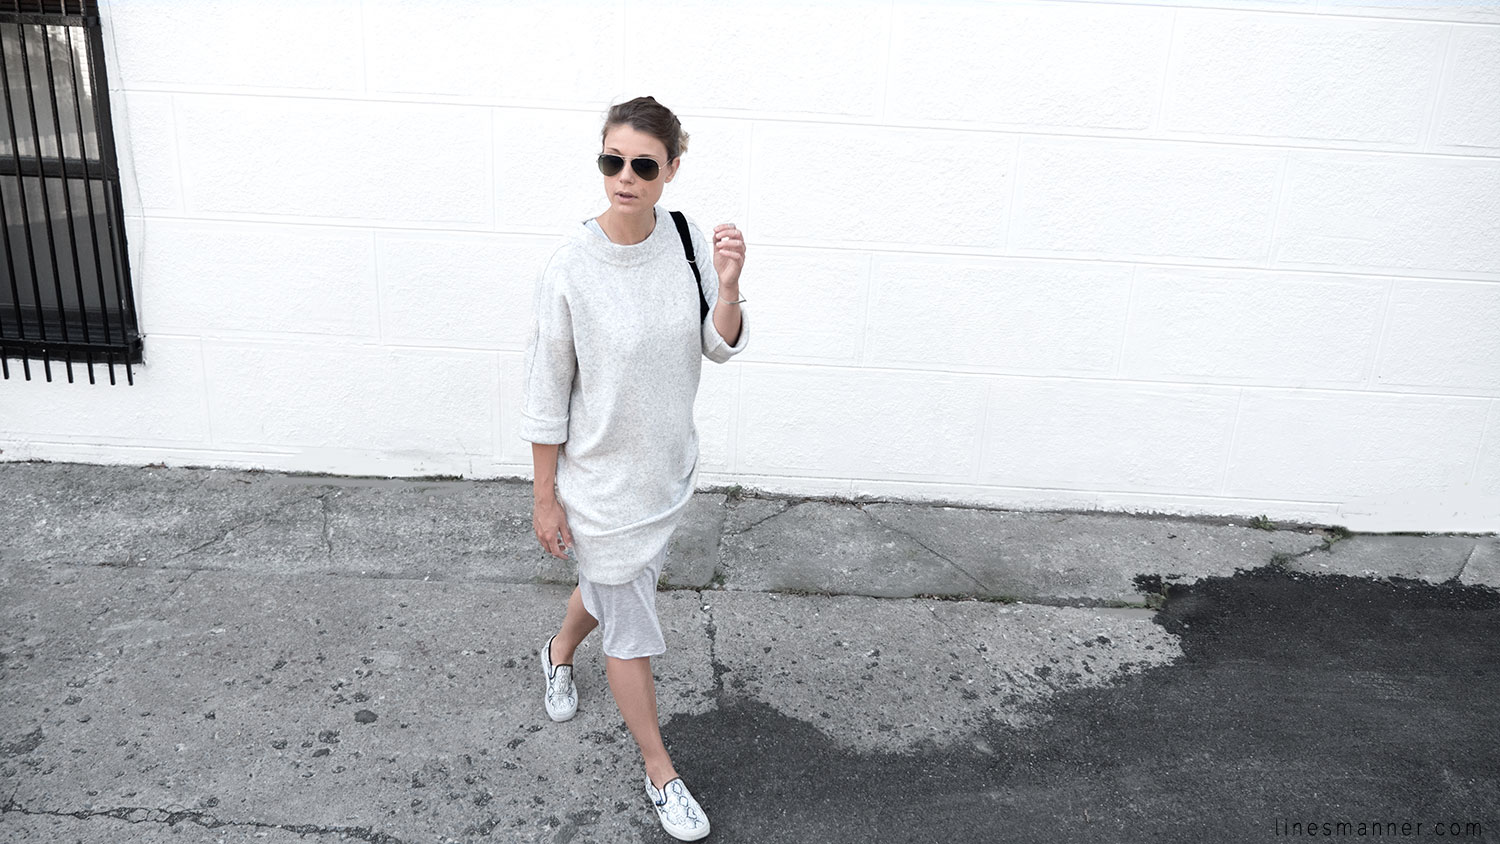 Lines-Manner-Fashion-Collaboration-The_Demeler-Monochrome-Grey_on_Grey-Fresh-Brightly-Outfit-Simplicity-Details-Trend-Minimalist-Flowy-Layering-Sleeves-Sweater_Dress-12